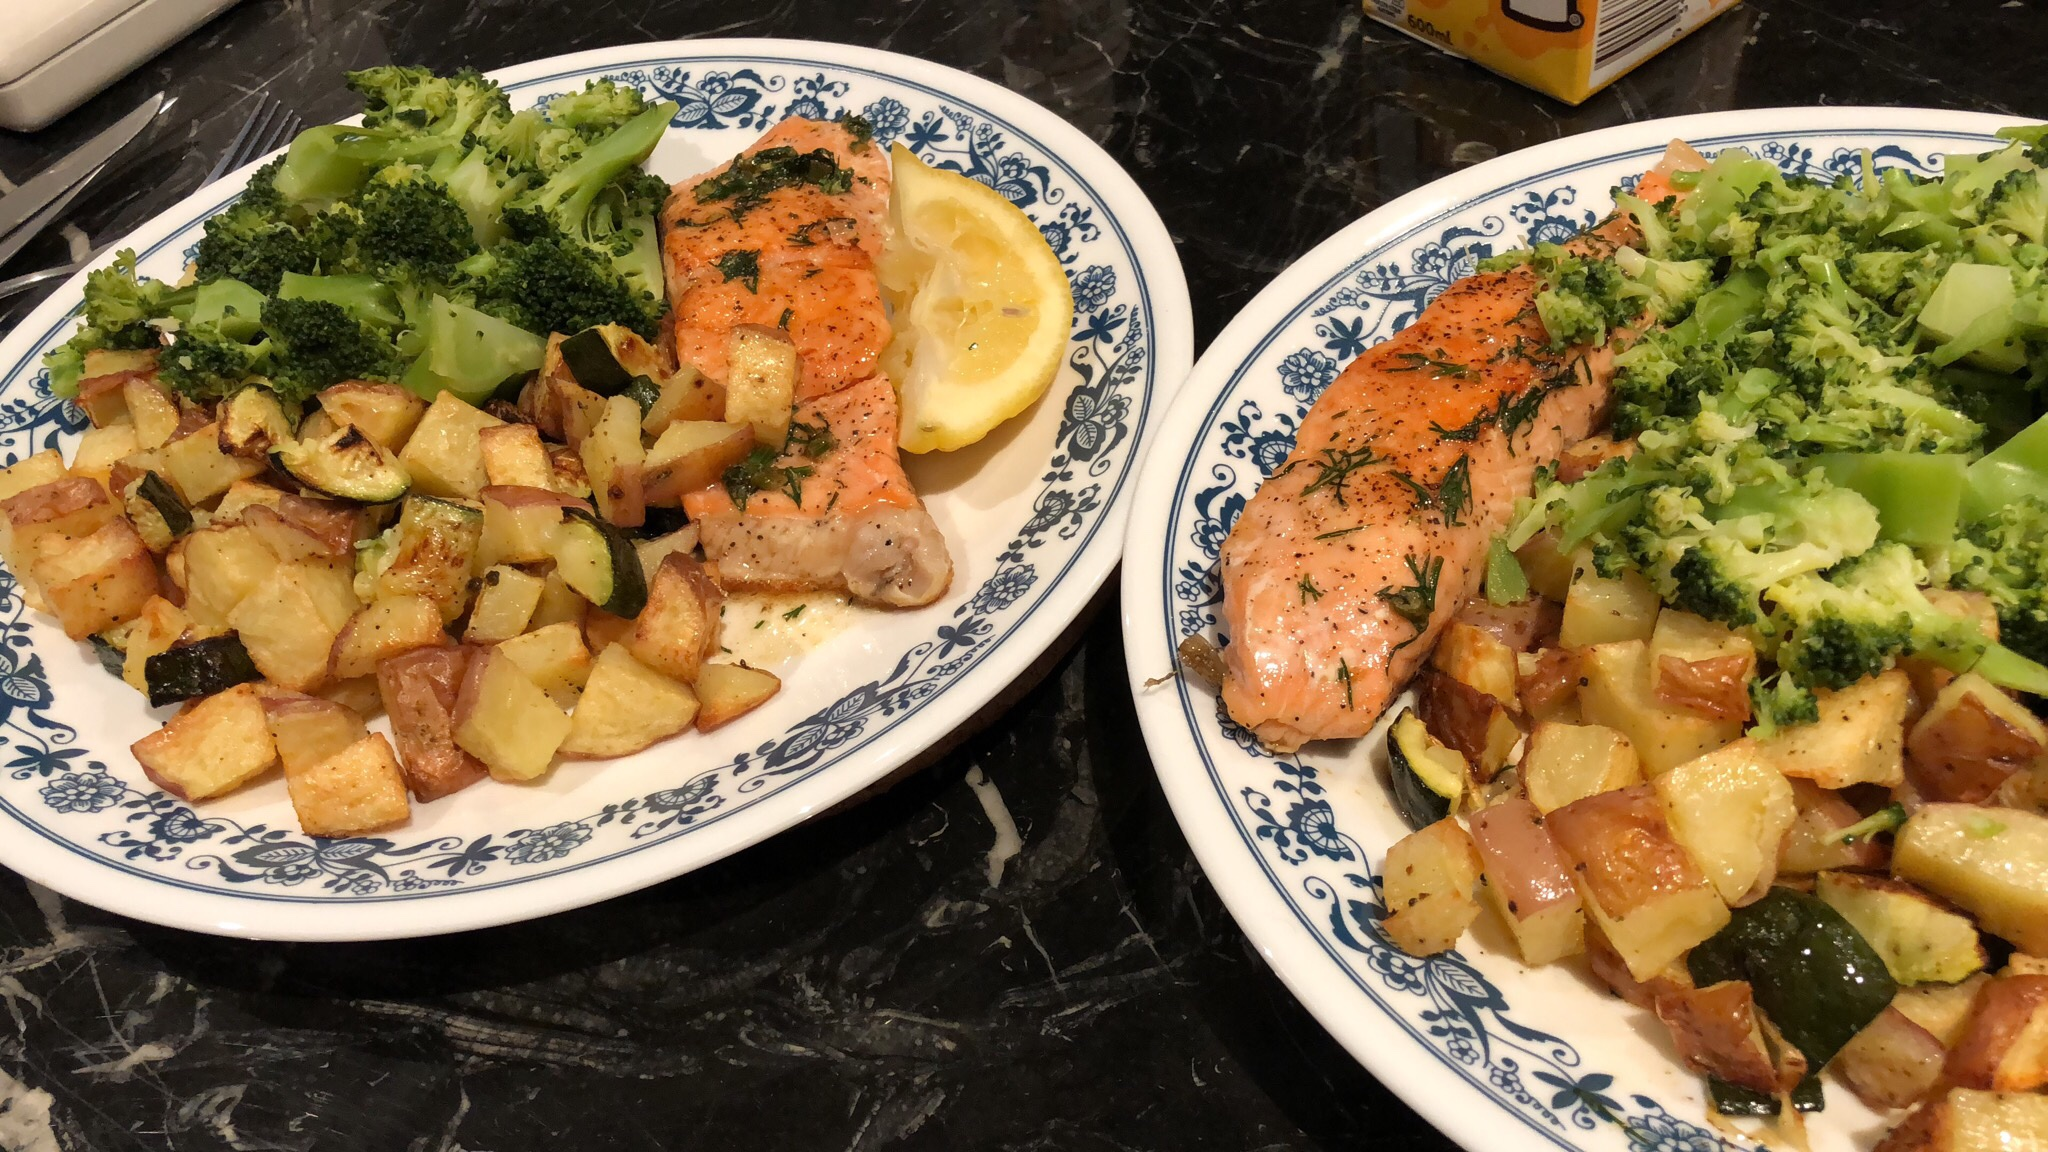 Two plates with seared salmon, chopped up potatoes and broccoli drizzled with butter dill sauce.